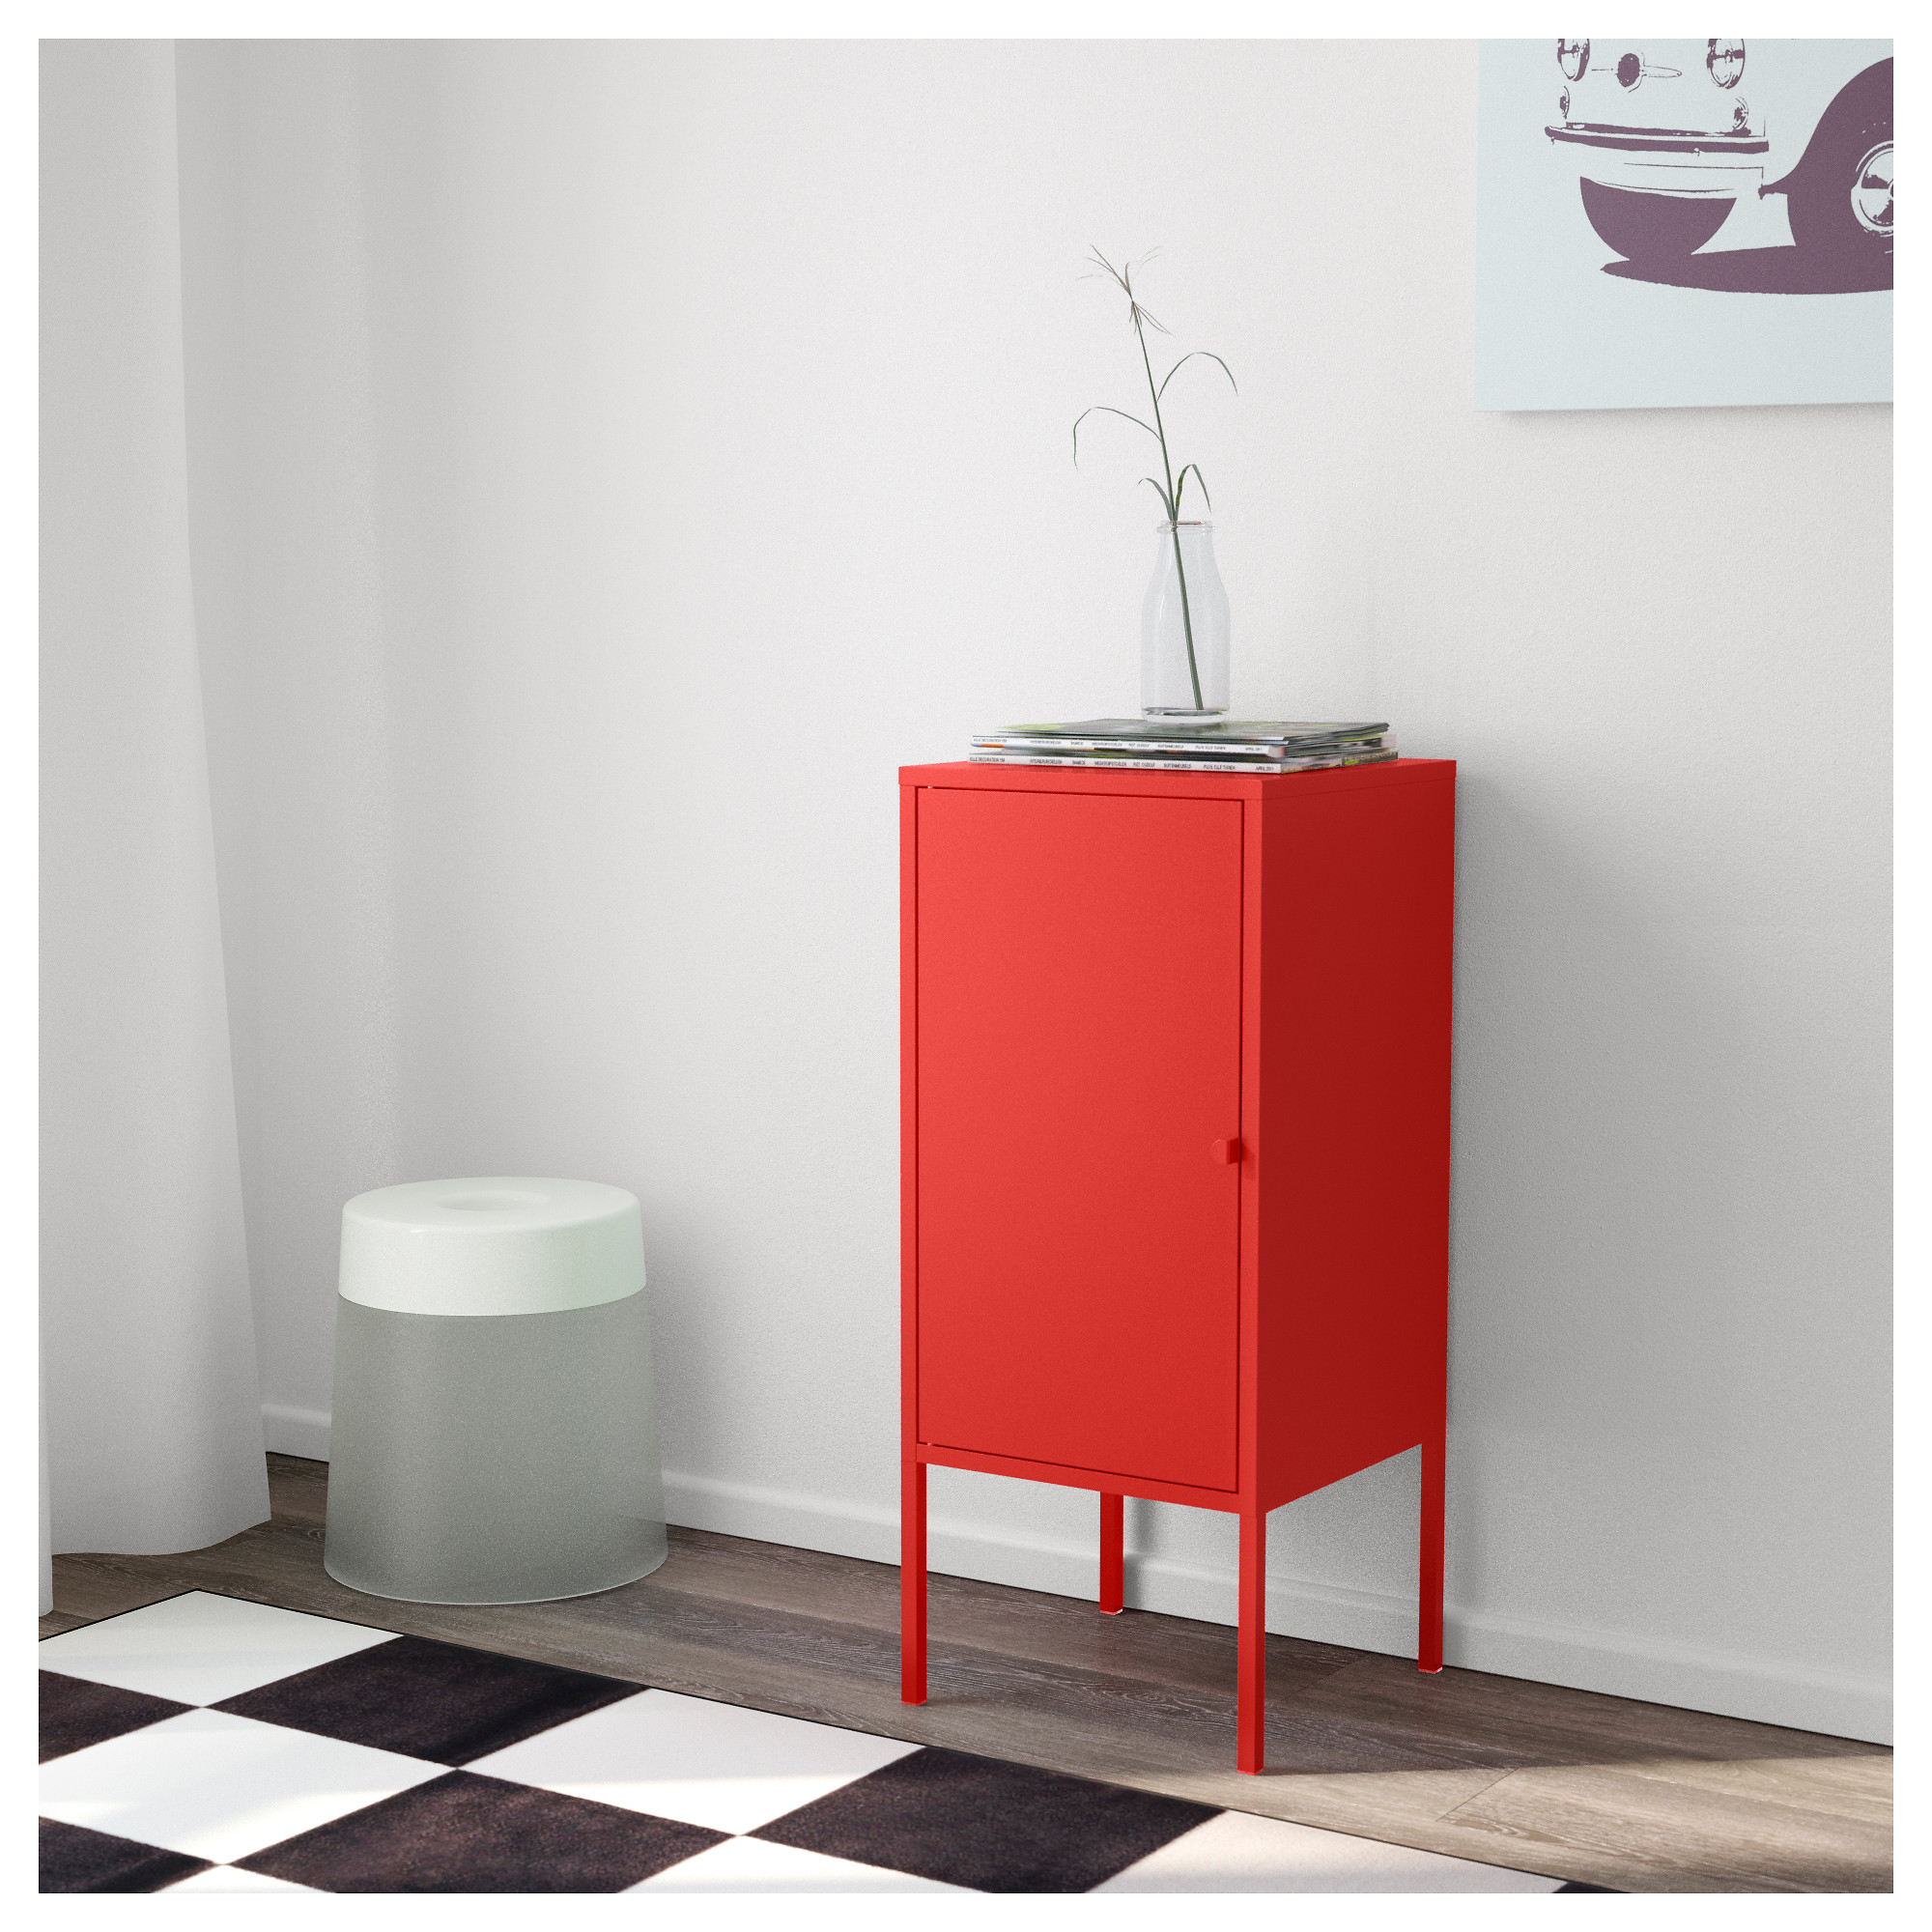 Charmant LIXHULT Cabinet   Metal/red   IKEA